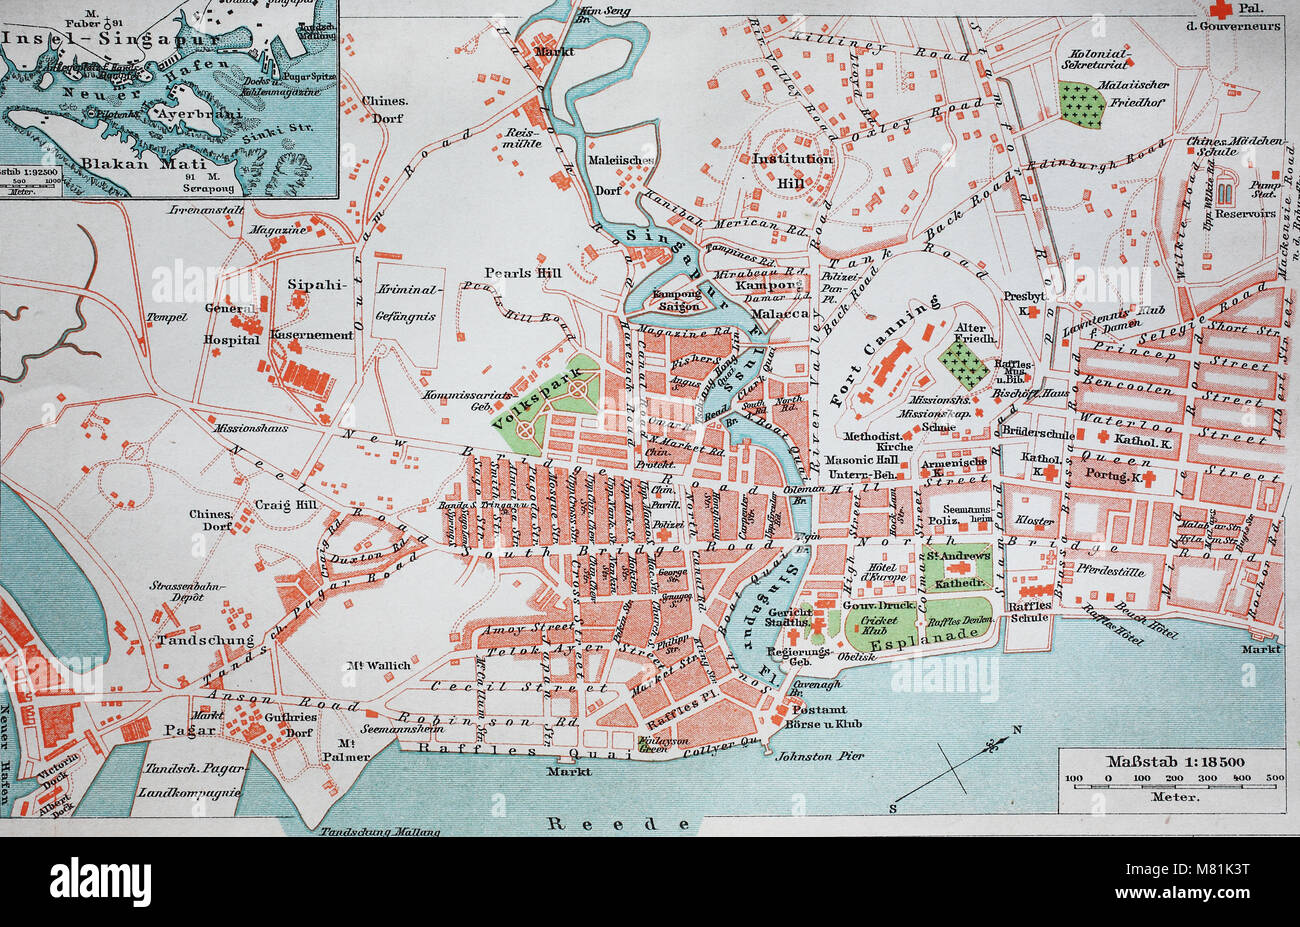 city map from the year 1892: Singapore, digital improved reproduction of an original print from the year 1895 Stock Photo